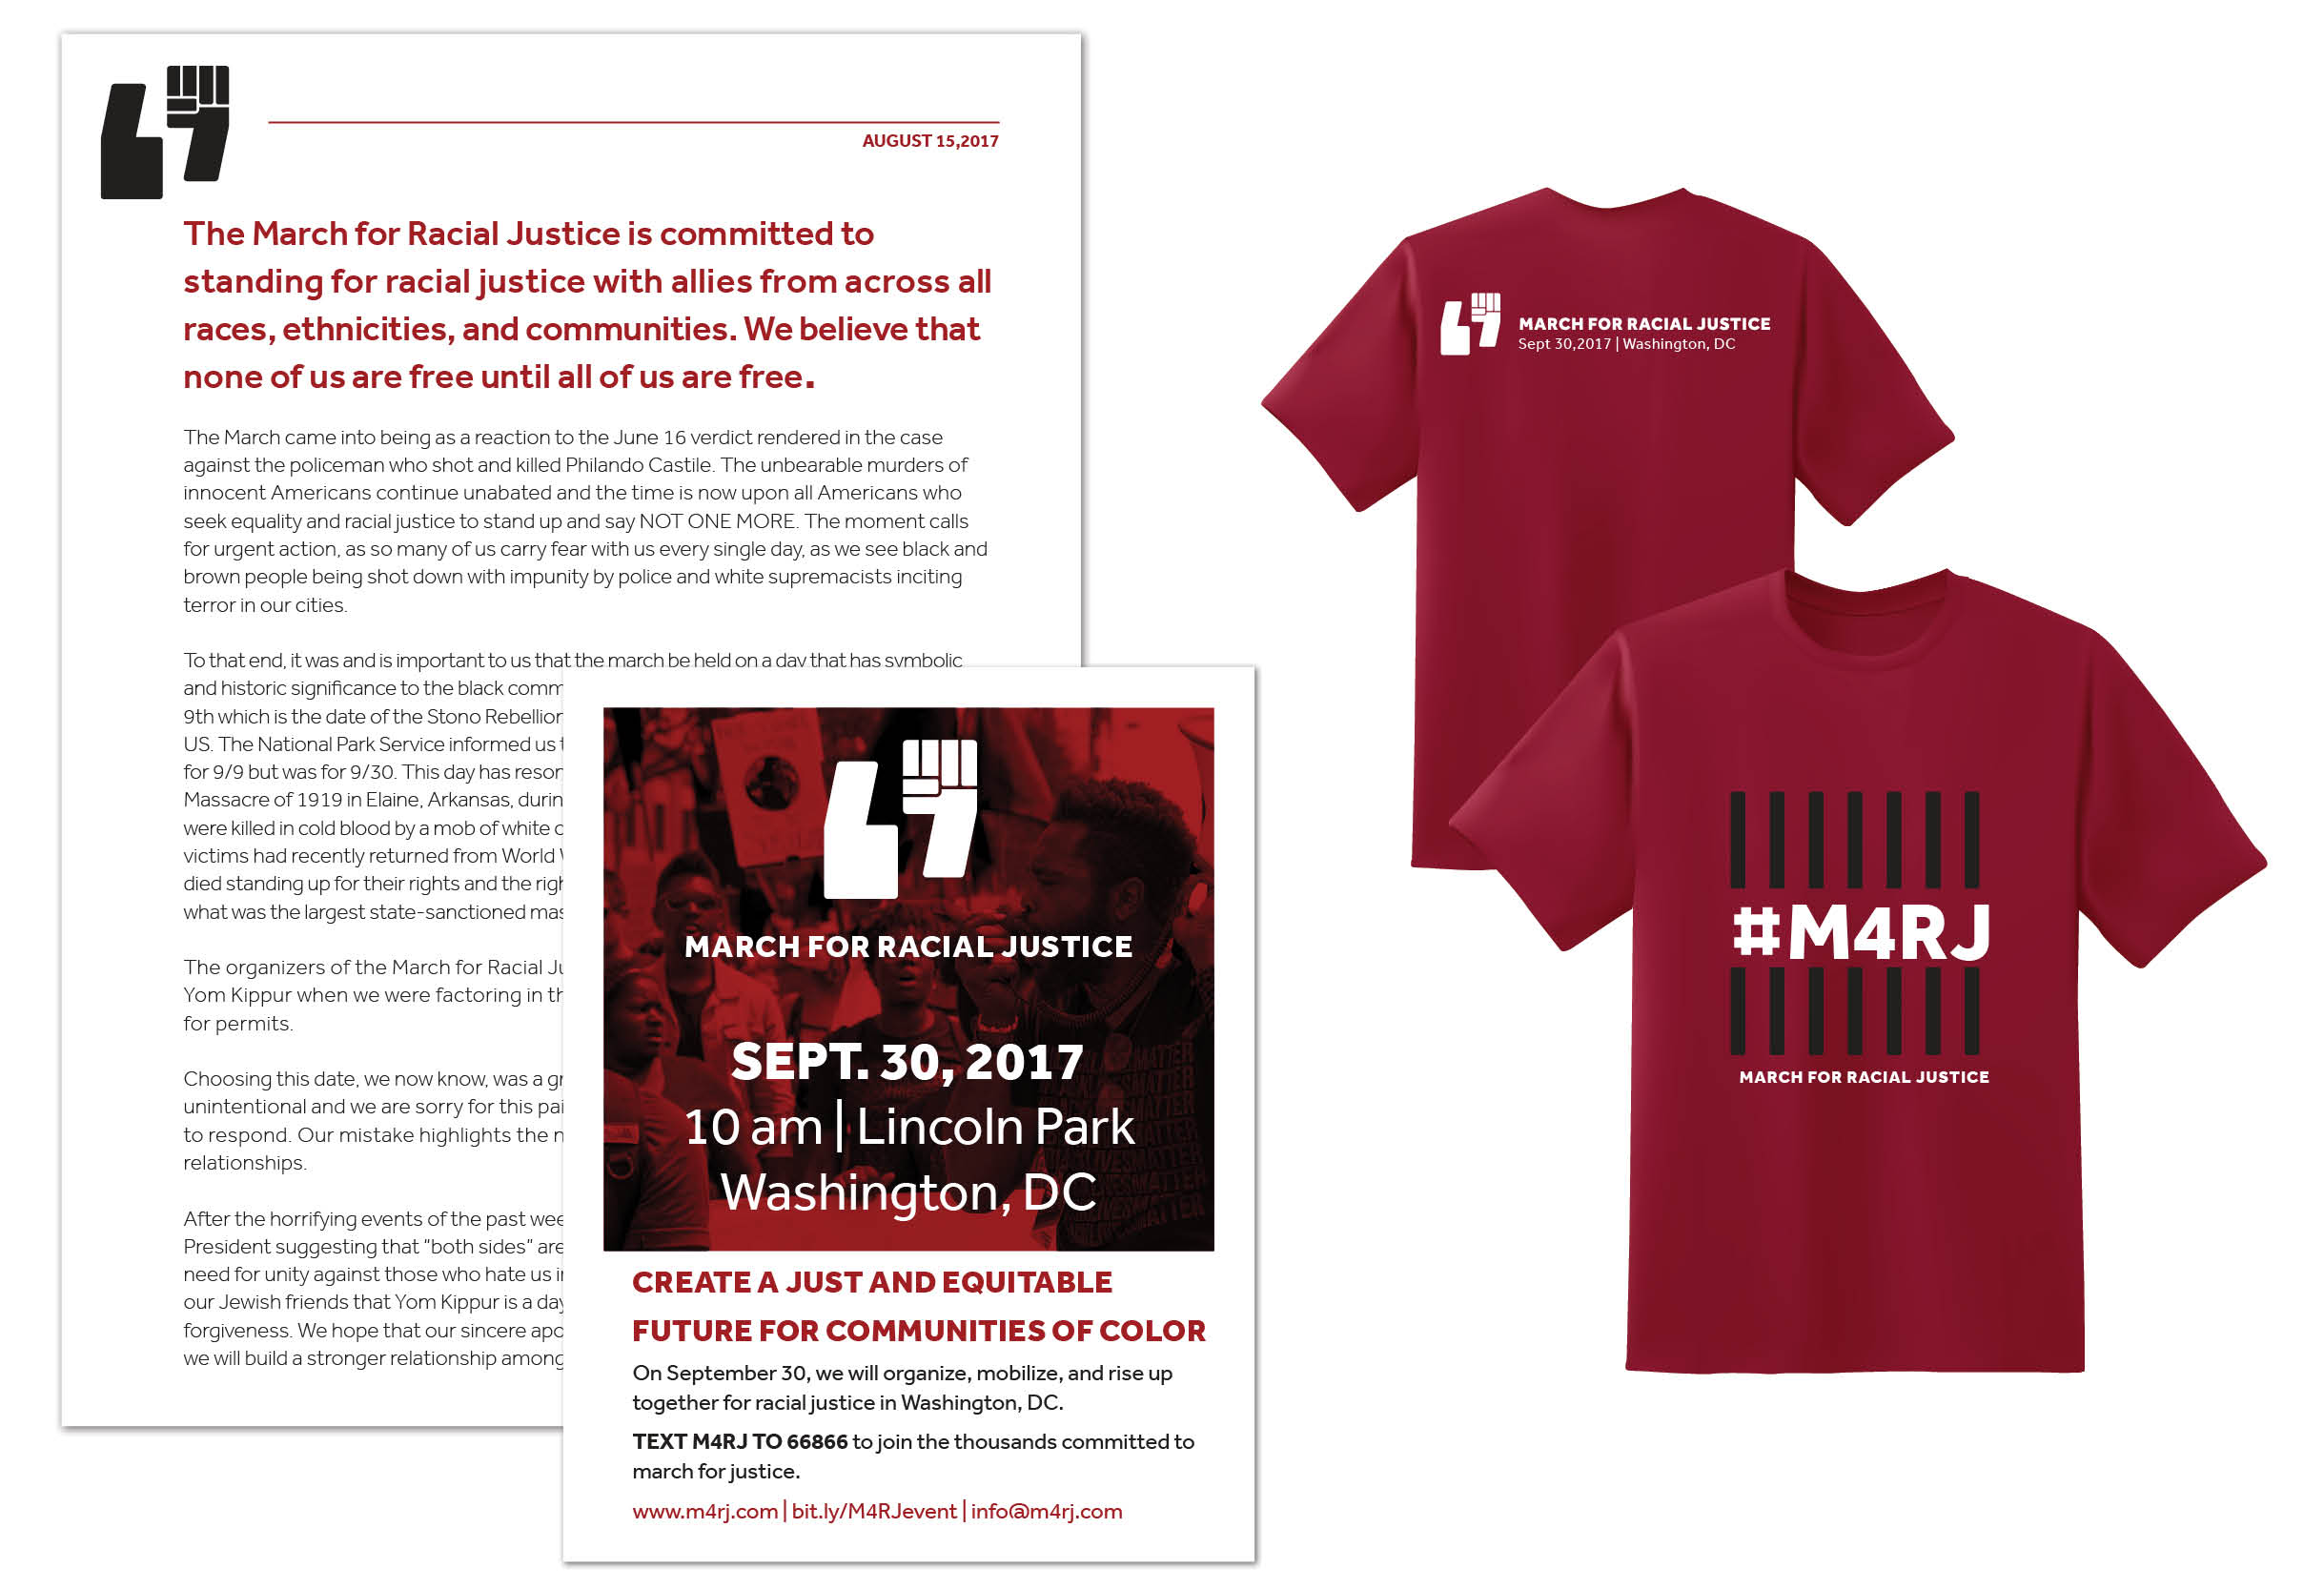 March for Racial Justice t-shirt design, letterhead, and annoucement flyer